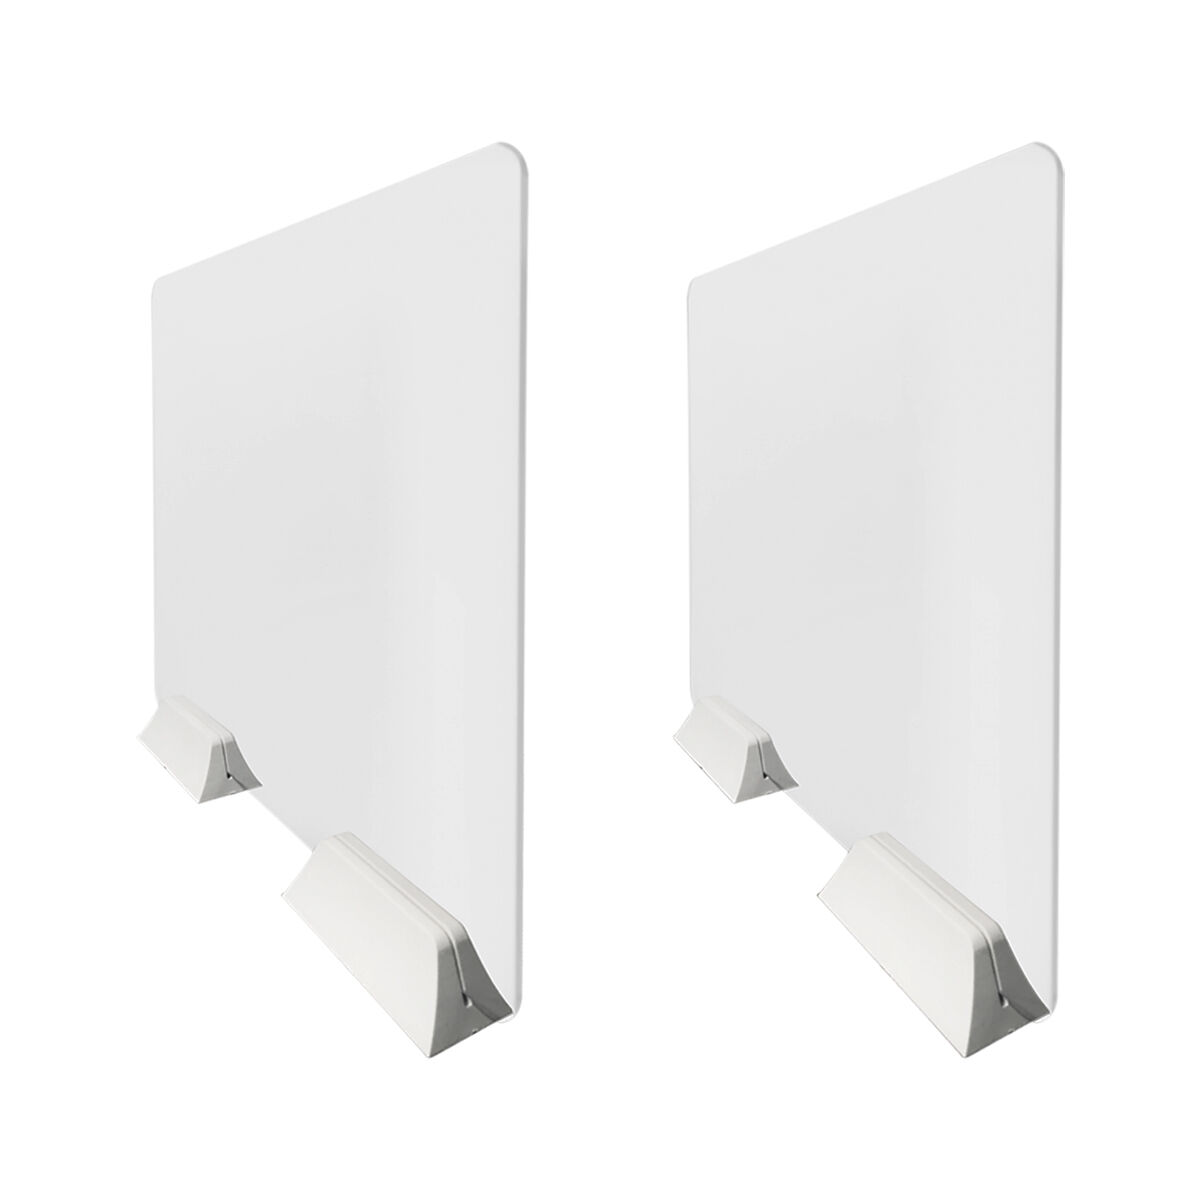 Protective Desk Dividers